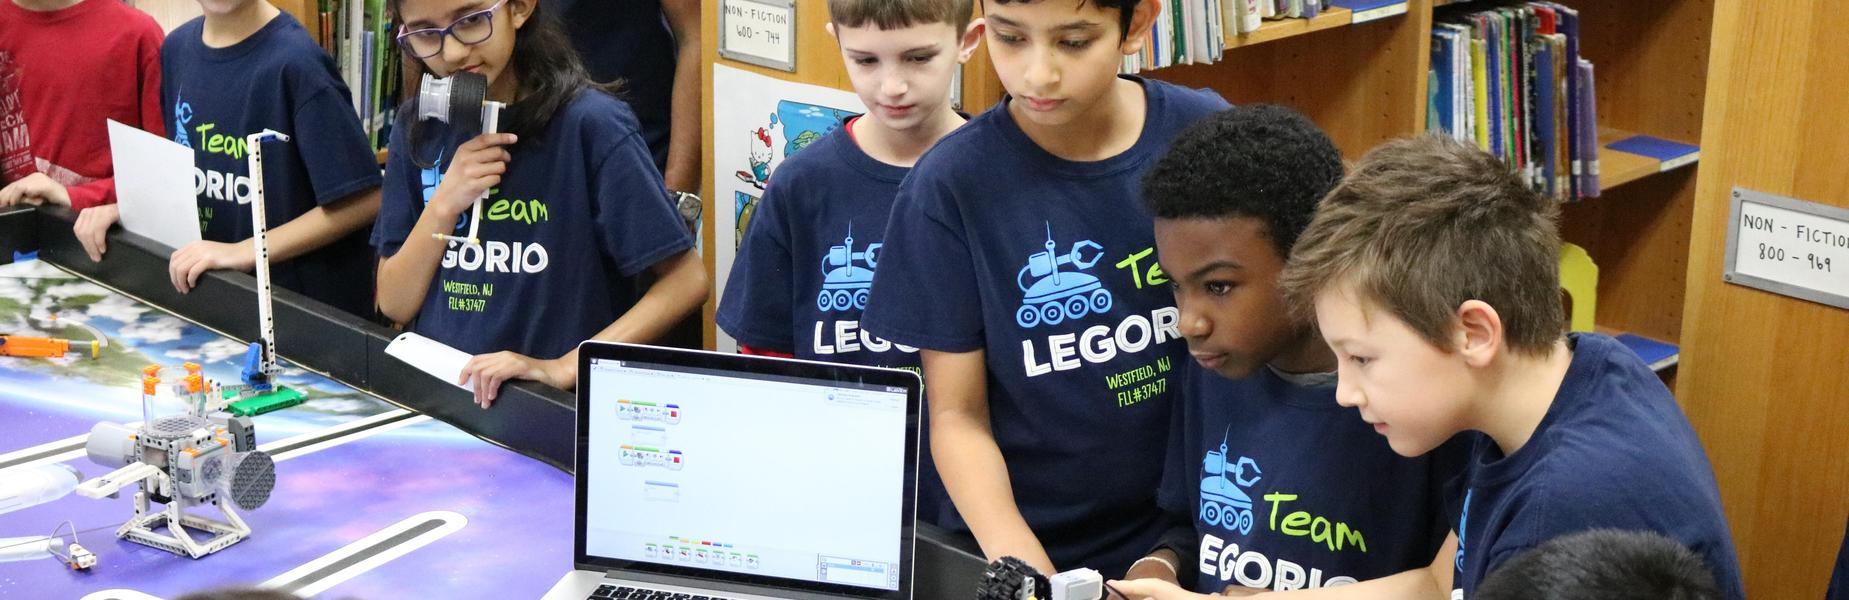 Jefferson School 4th grade Lego Robotics team demonstrate to schoolmates techniques they used during a recent Lego League competition.